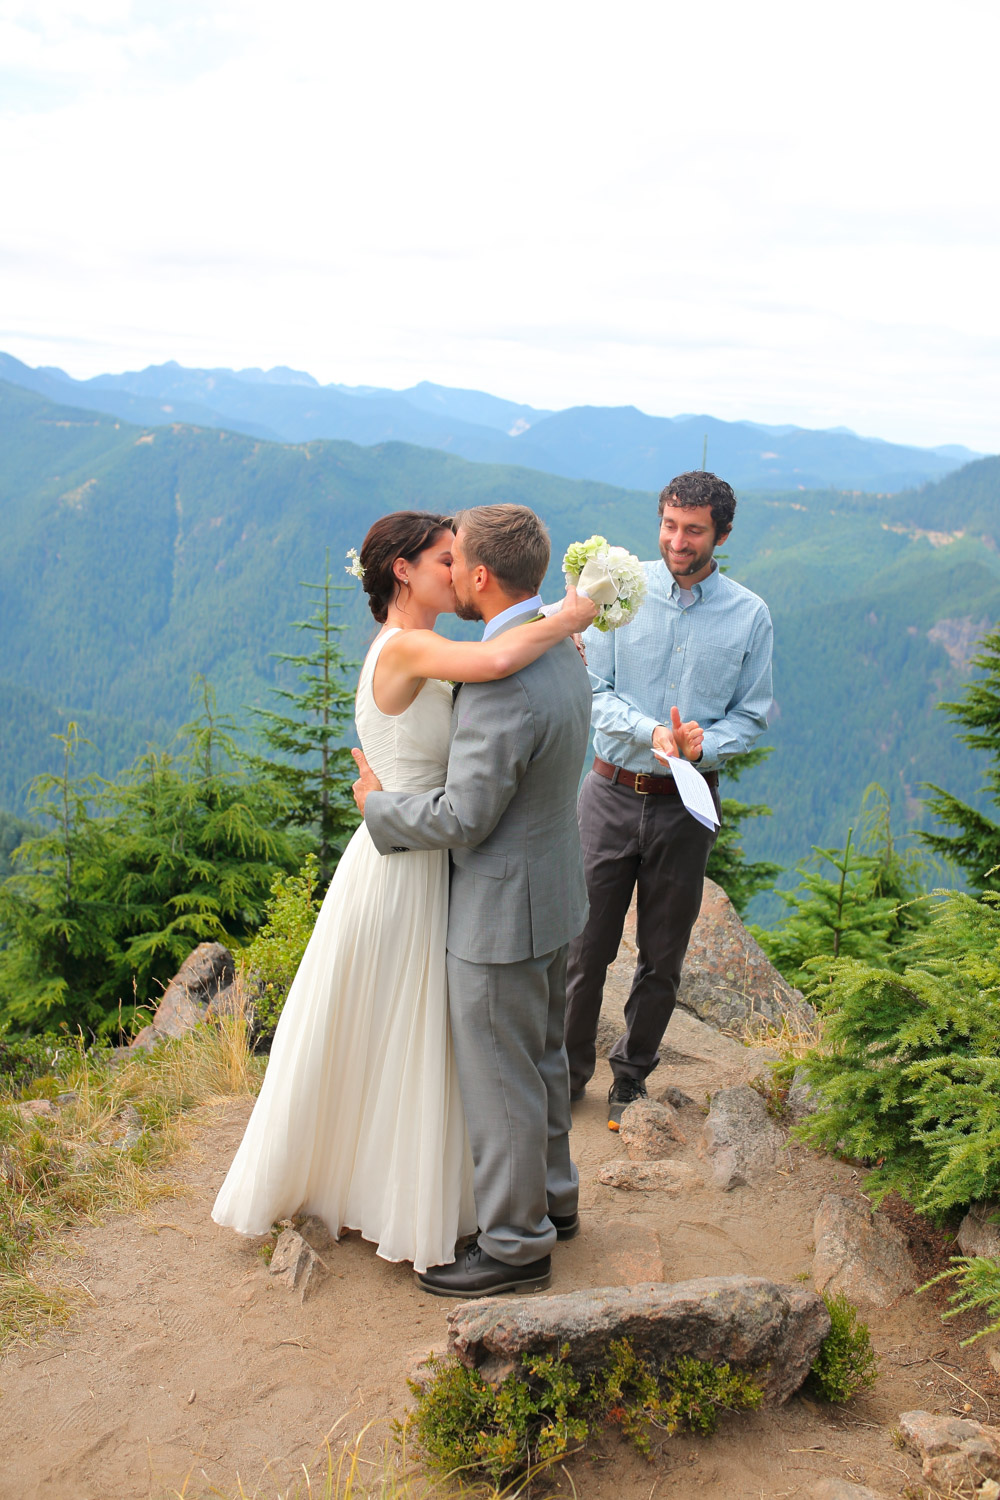 Wedding Photos Mt Rainer Suntop Fire Lookout Washington13.jpg